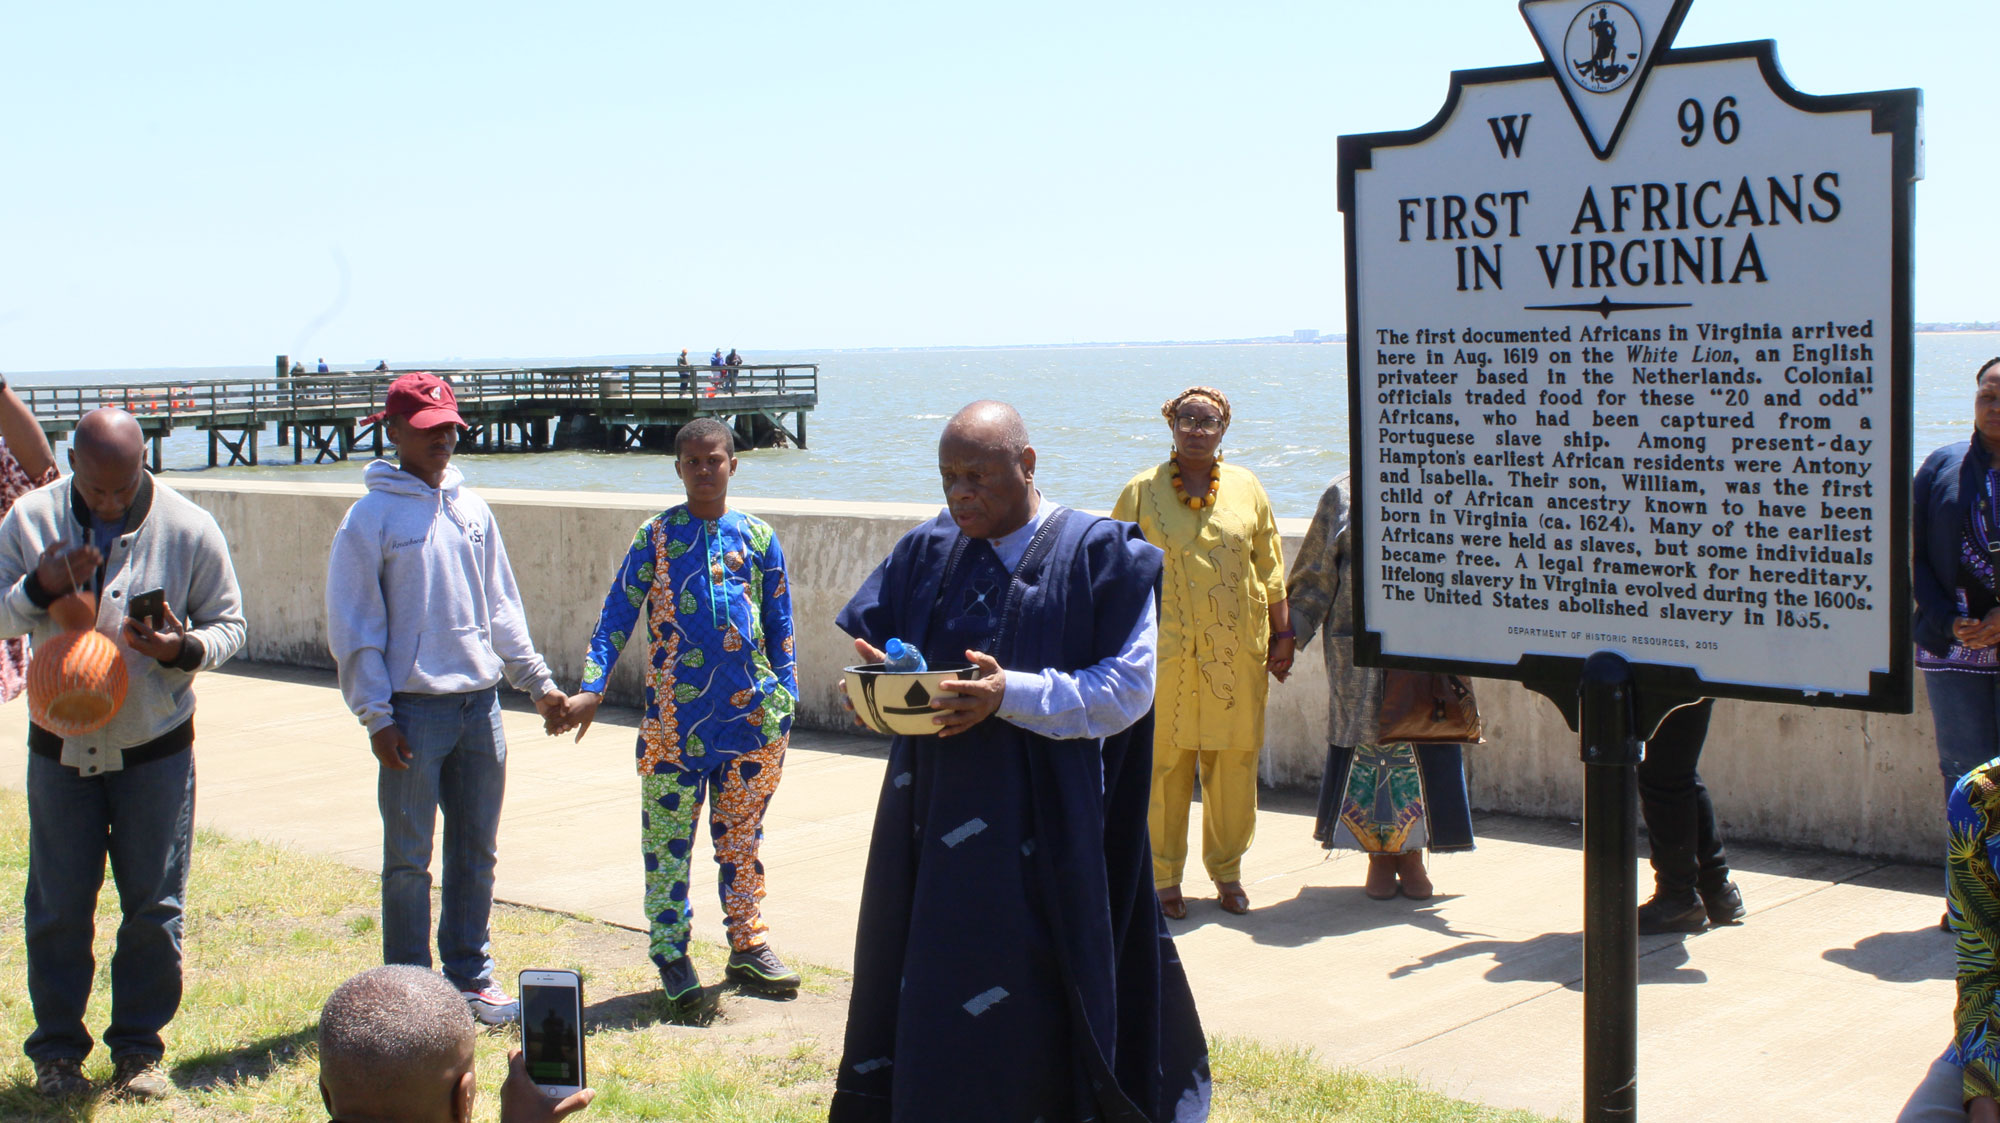 Pilgrimage to Point Comfort Virginia to Honor the Ancestors